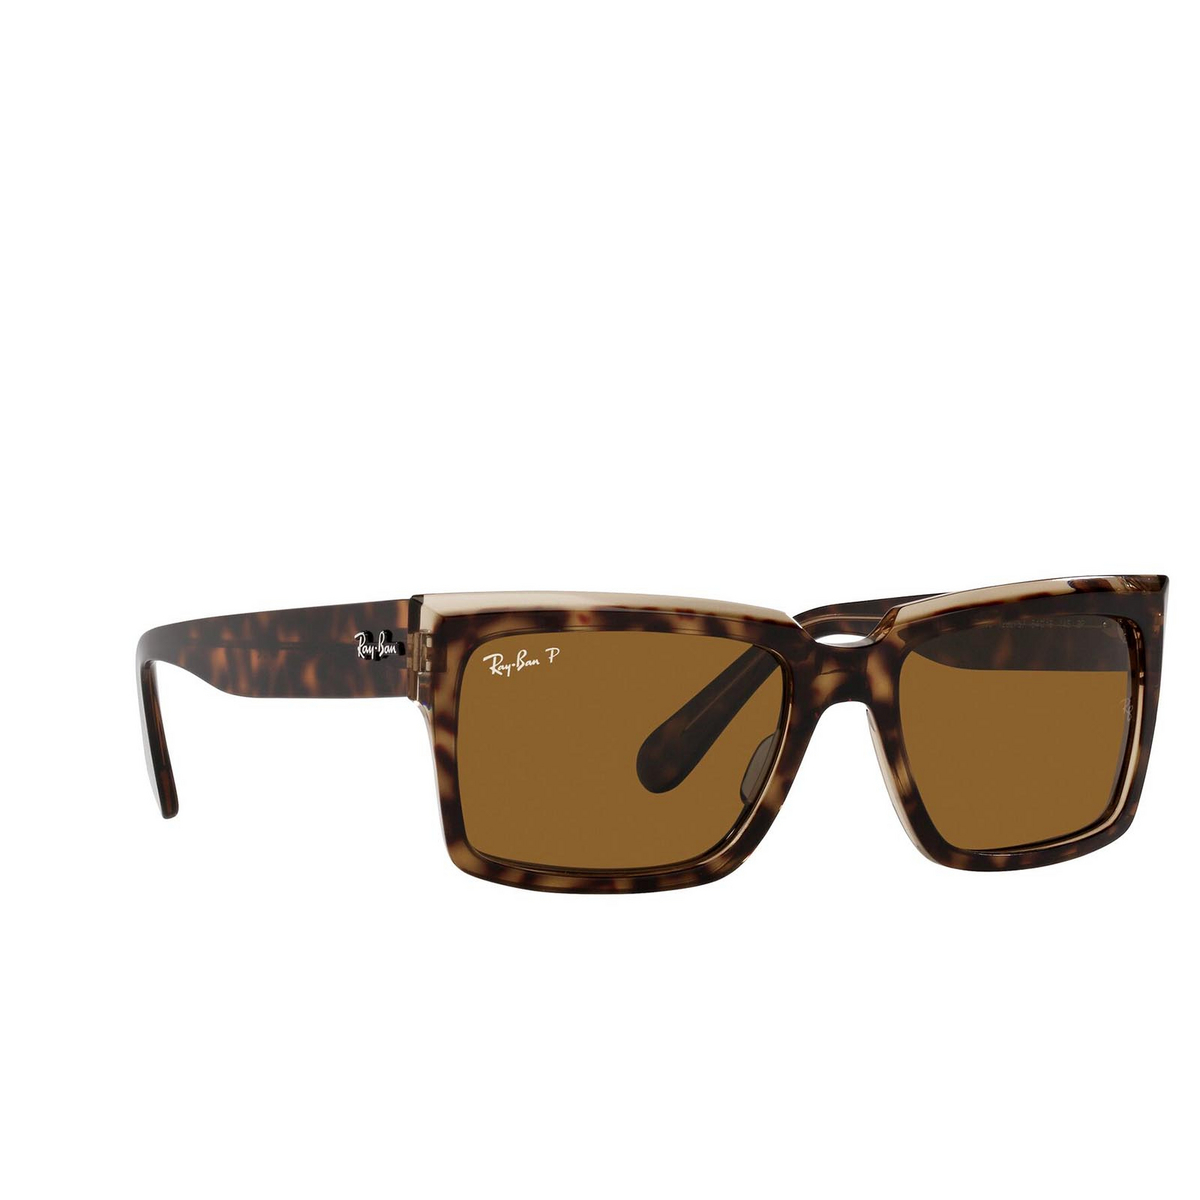 Ray-Ban® Square Sunglasses: Inverness RB2191 color Havana On Transparent Brown 129257.